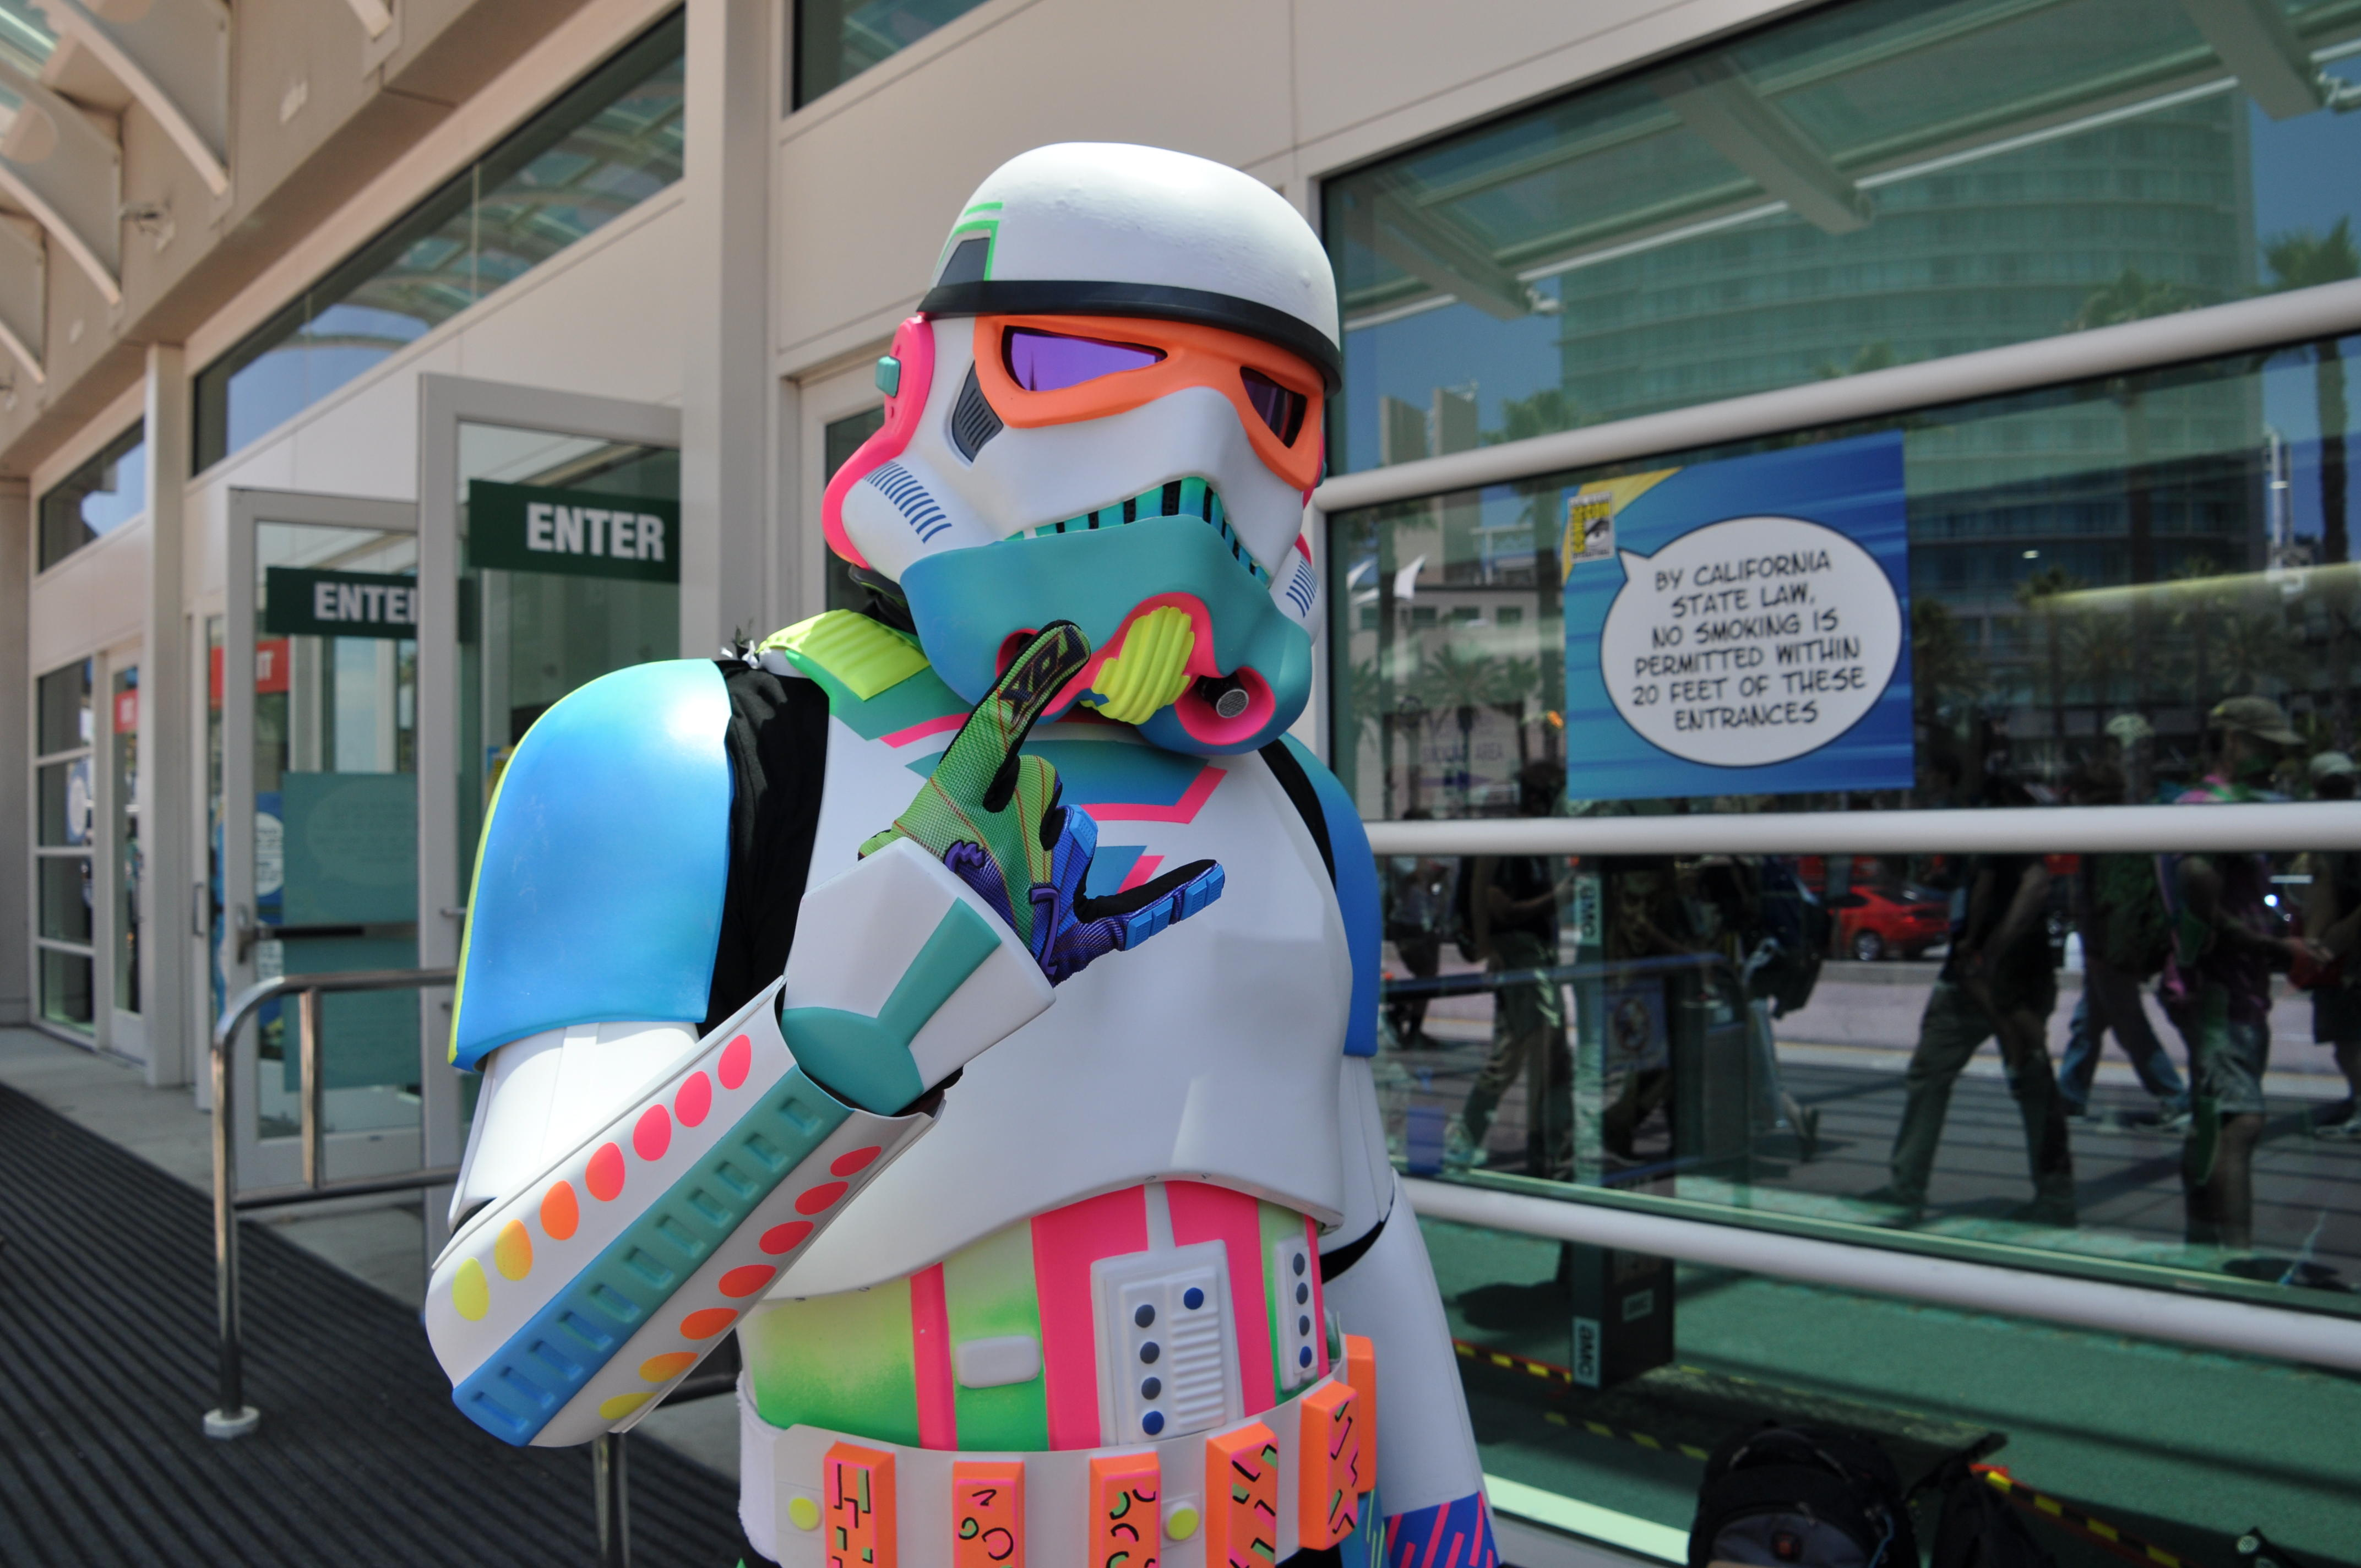 A colorful Stormtrooper